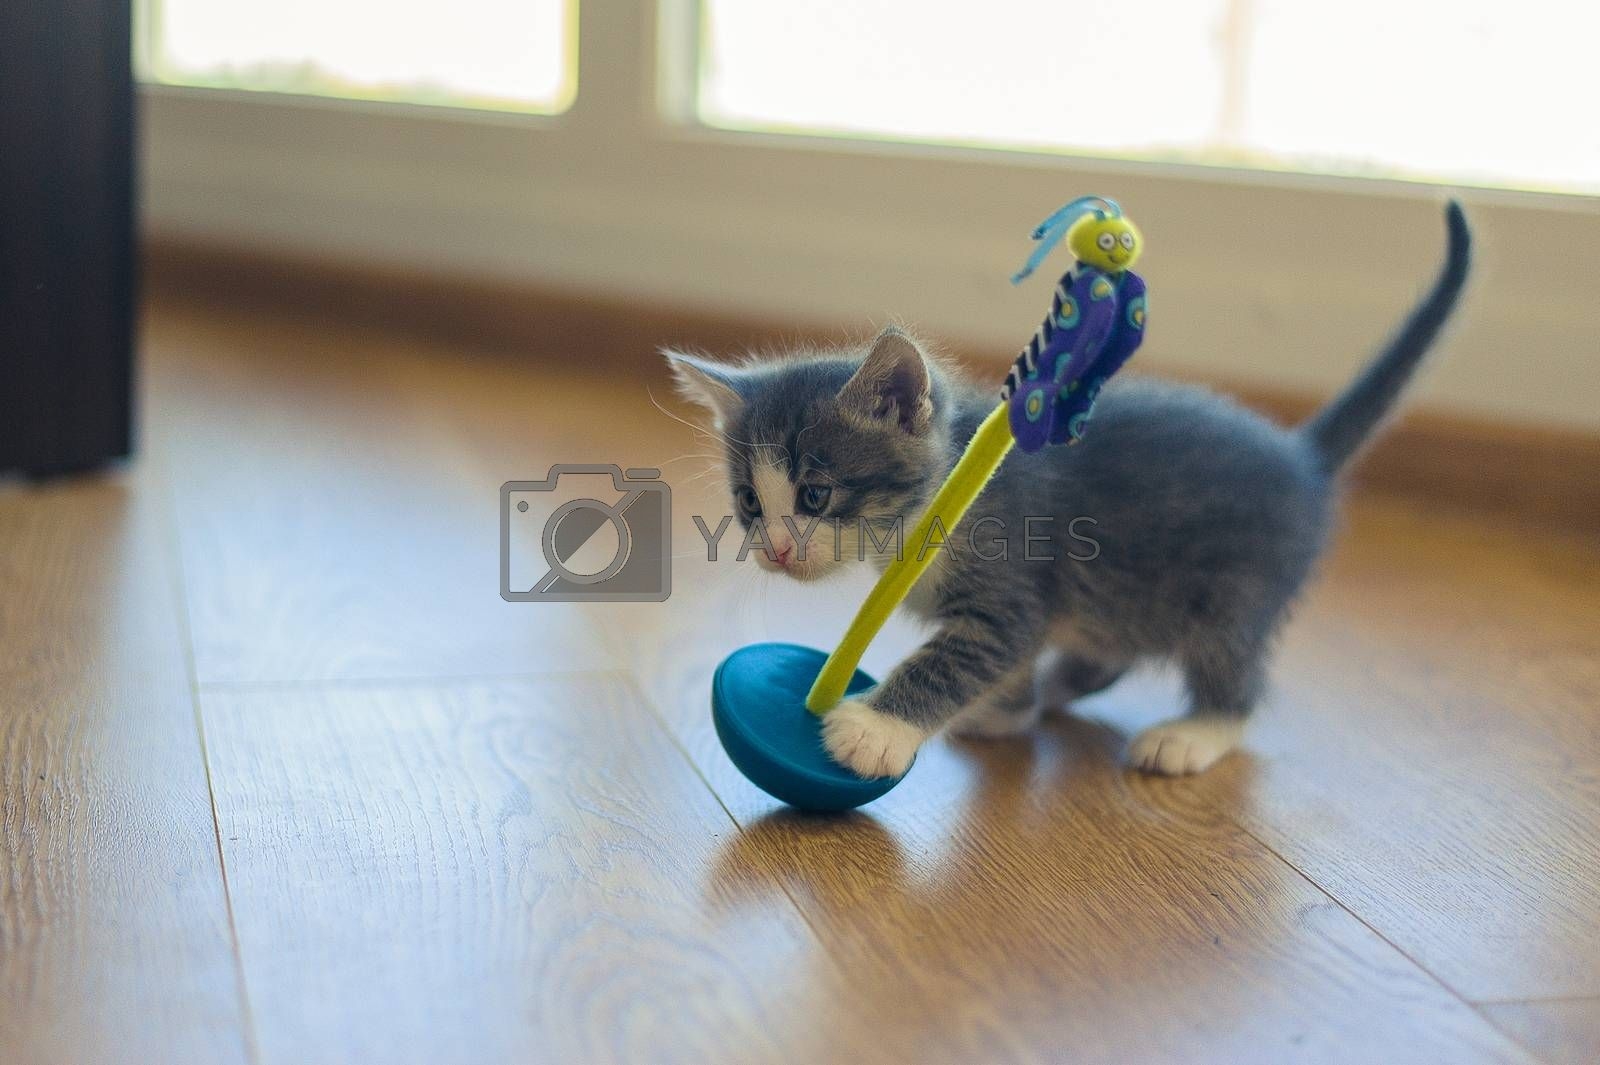 gray kitten is played with a roly-poly toy on a wooden floor